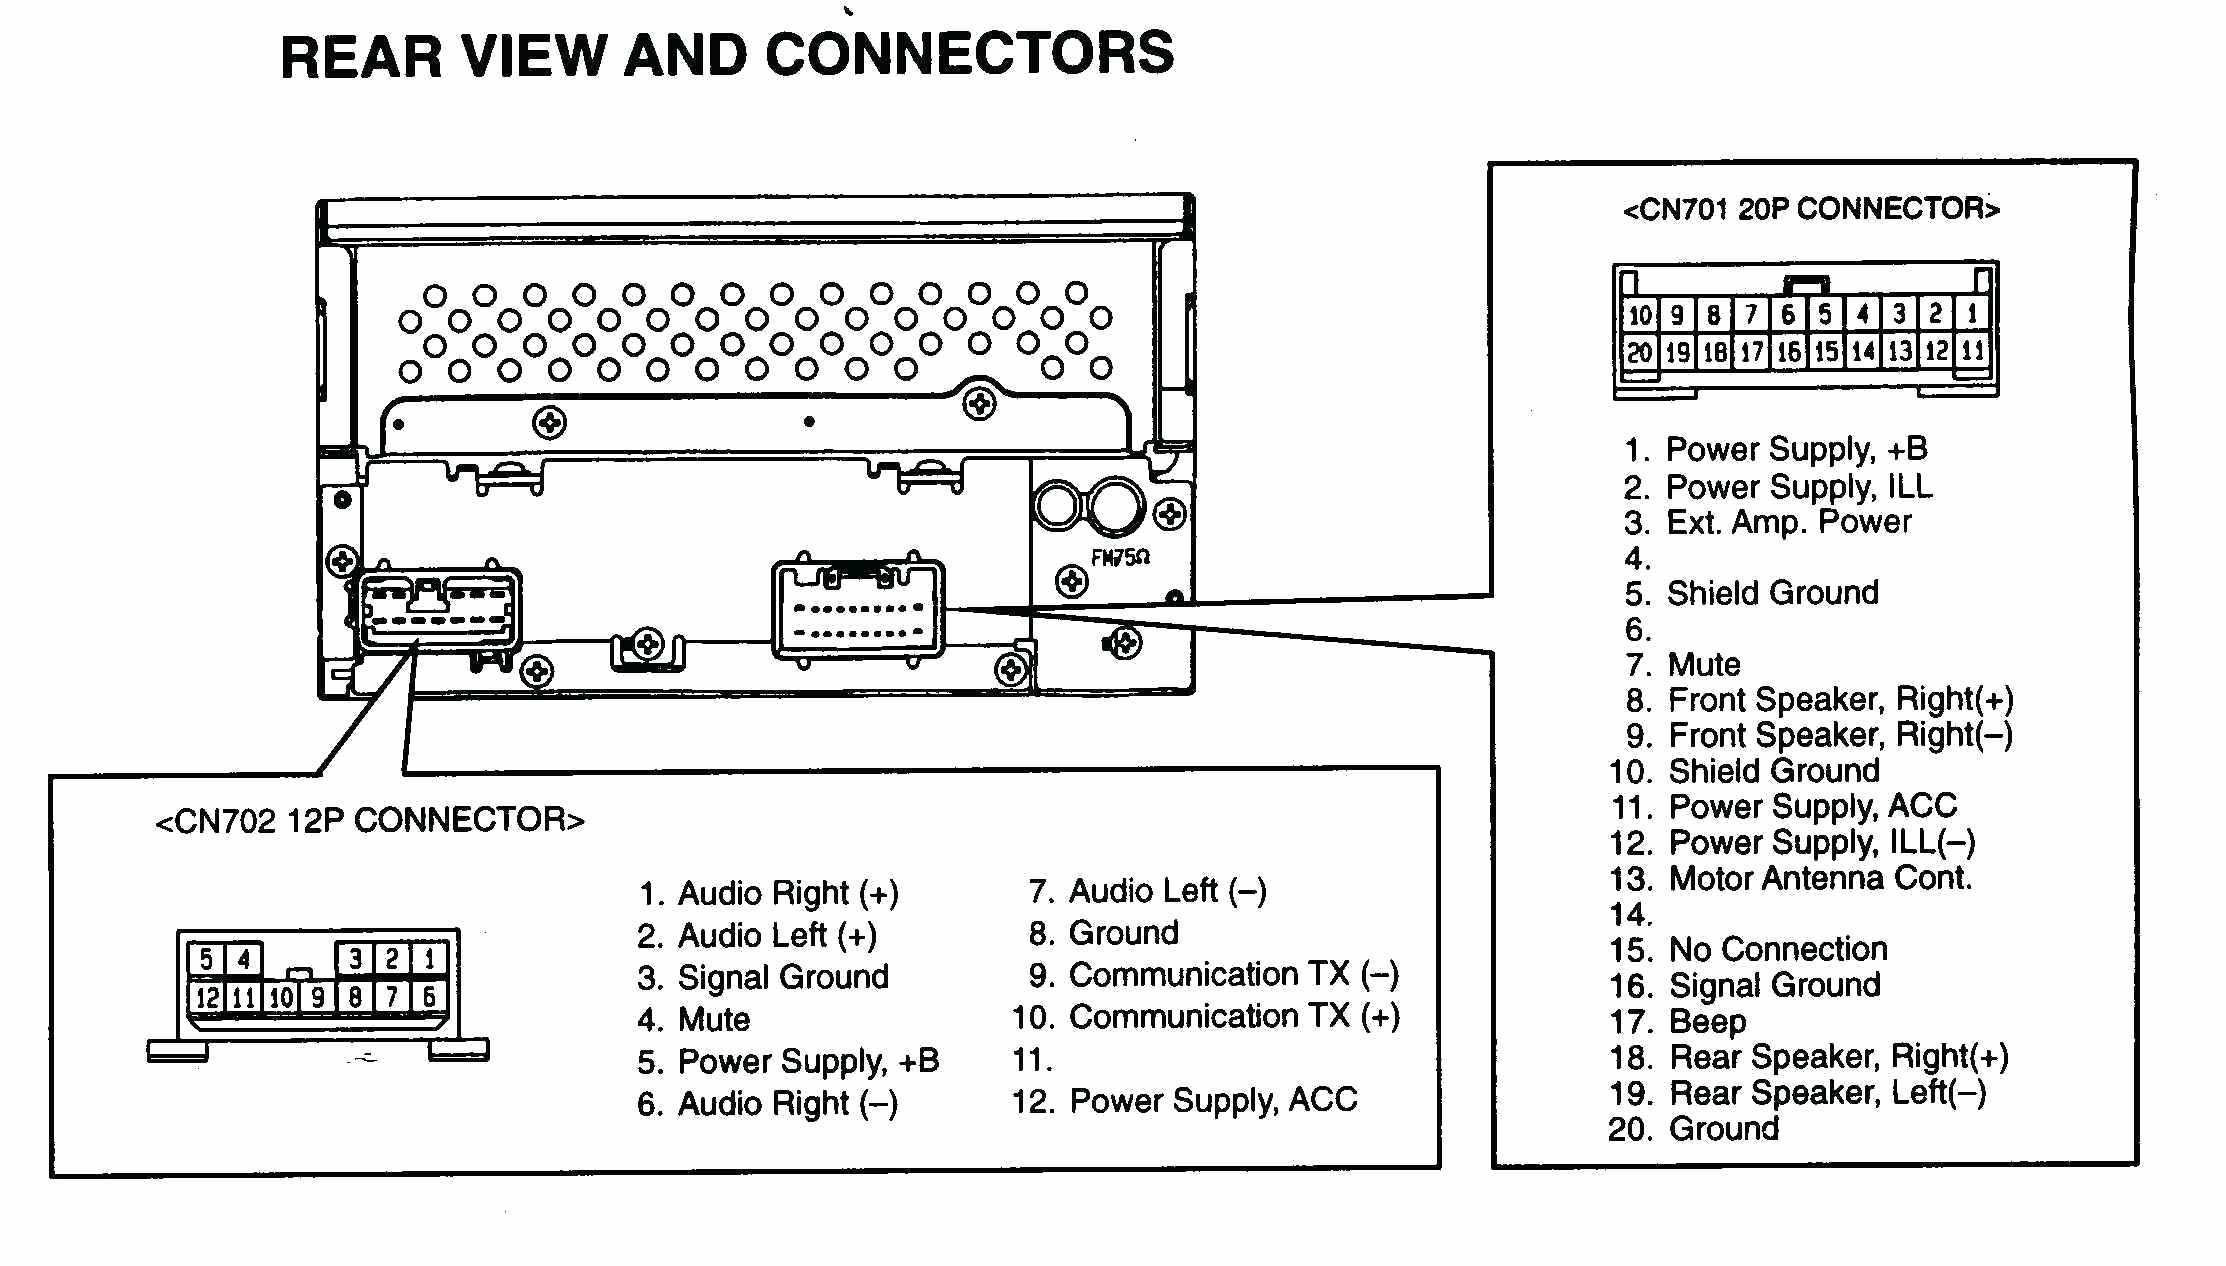 bose amp wiring diagram Download-Audi A4 Bose Amp Wiring Diagram New Lovely Car Stereo Wiring Diagram Diagram 1-t